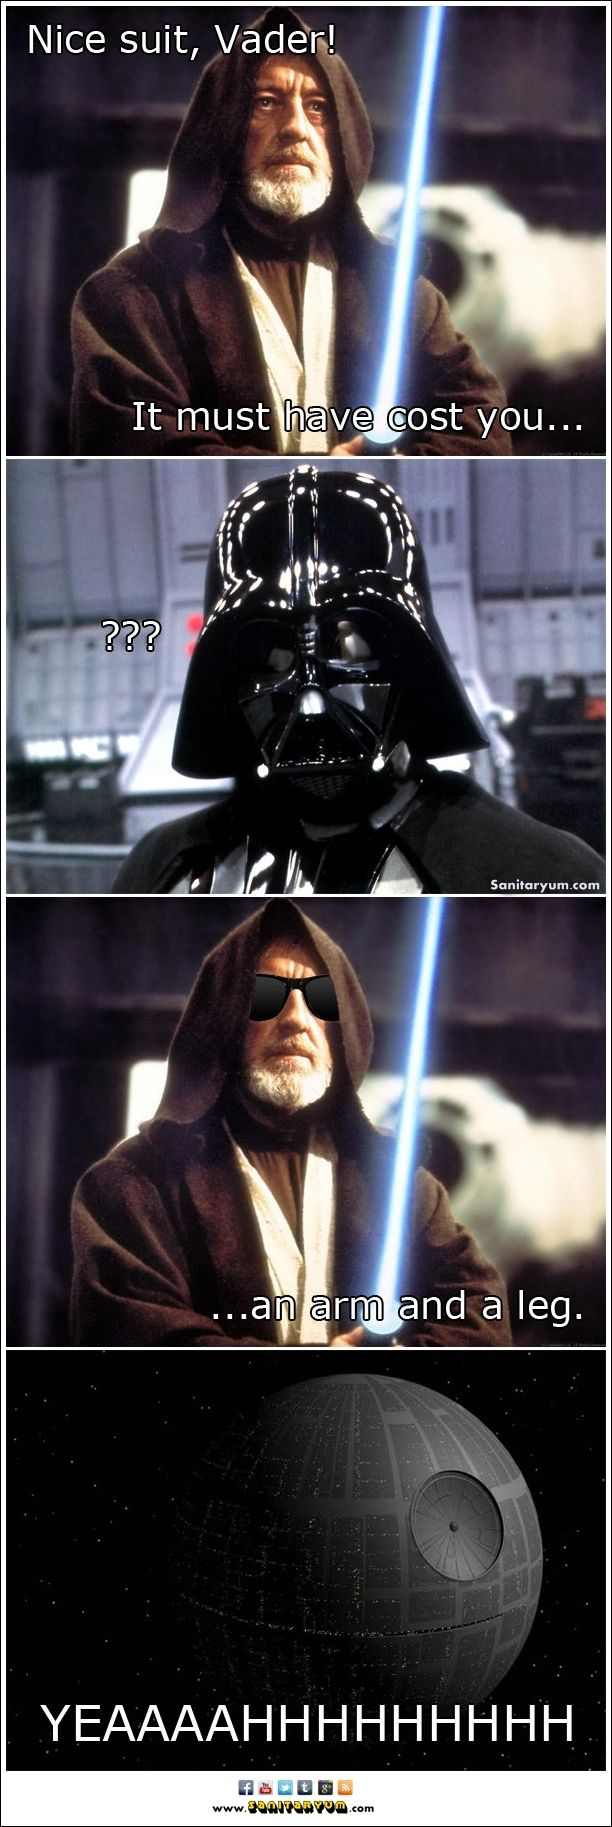 star wars images funny - photo #39